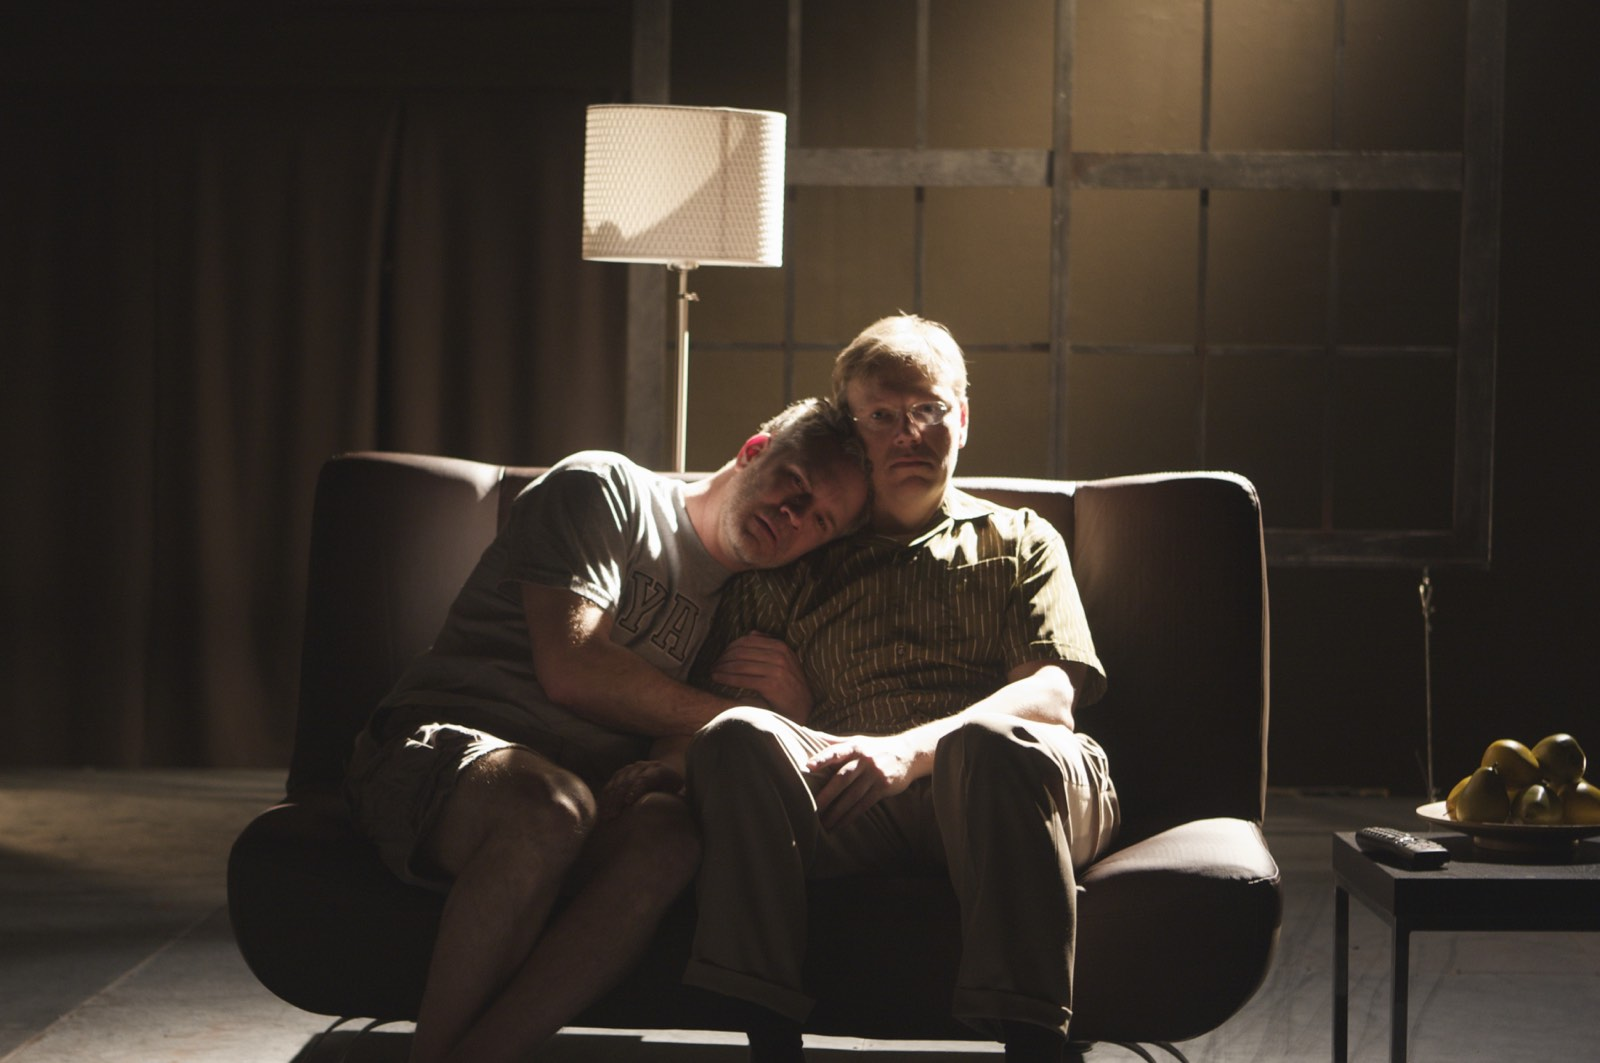 DADDY - Gerald McCullouch and Dan Via<br>Set by Eugenia Furneaux, Lighting by Zak Al-Alami, Costumes by Michele Reisch - photo by Eduardo Placer